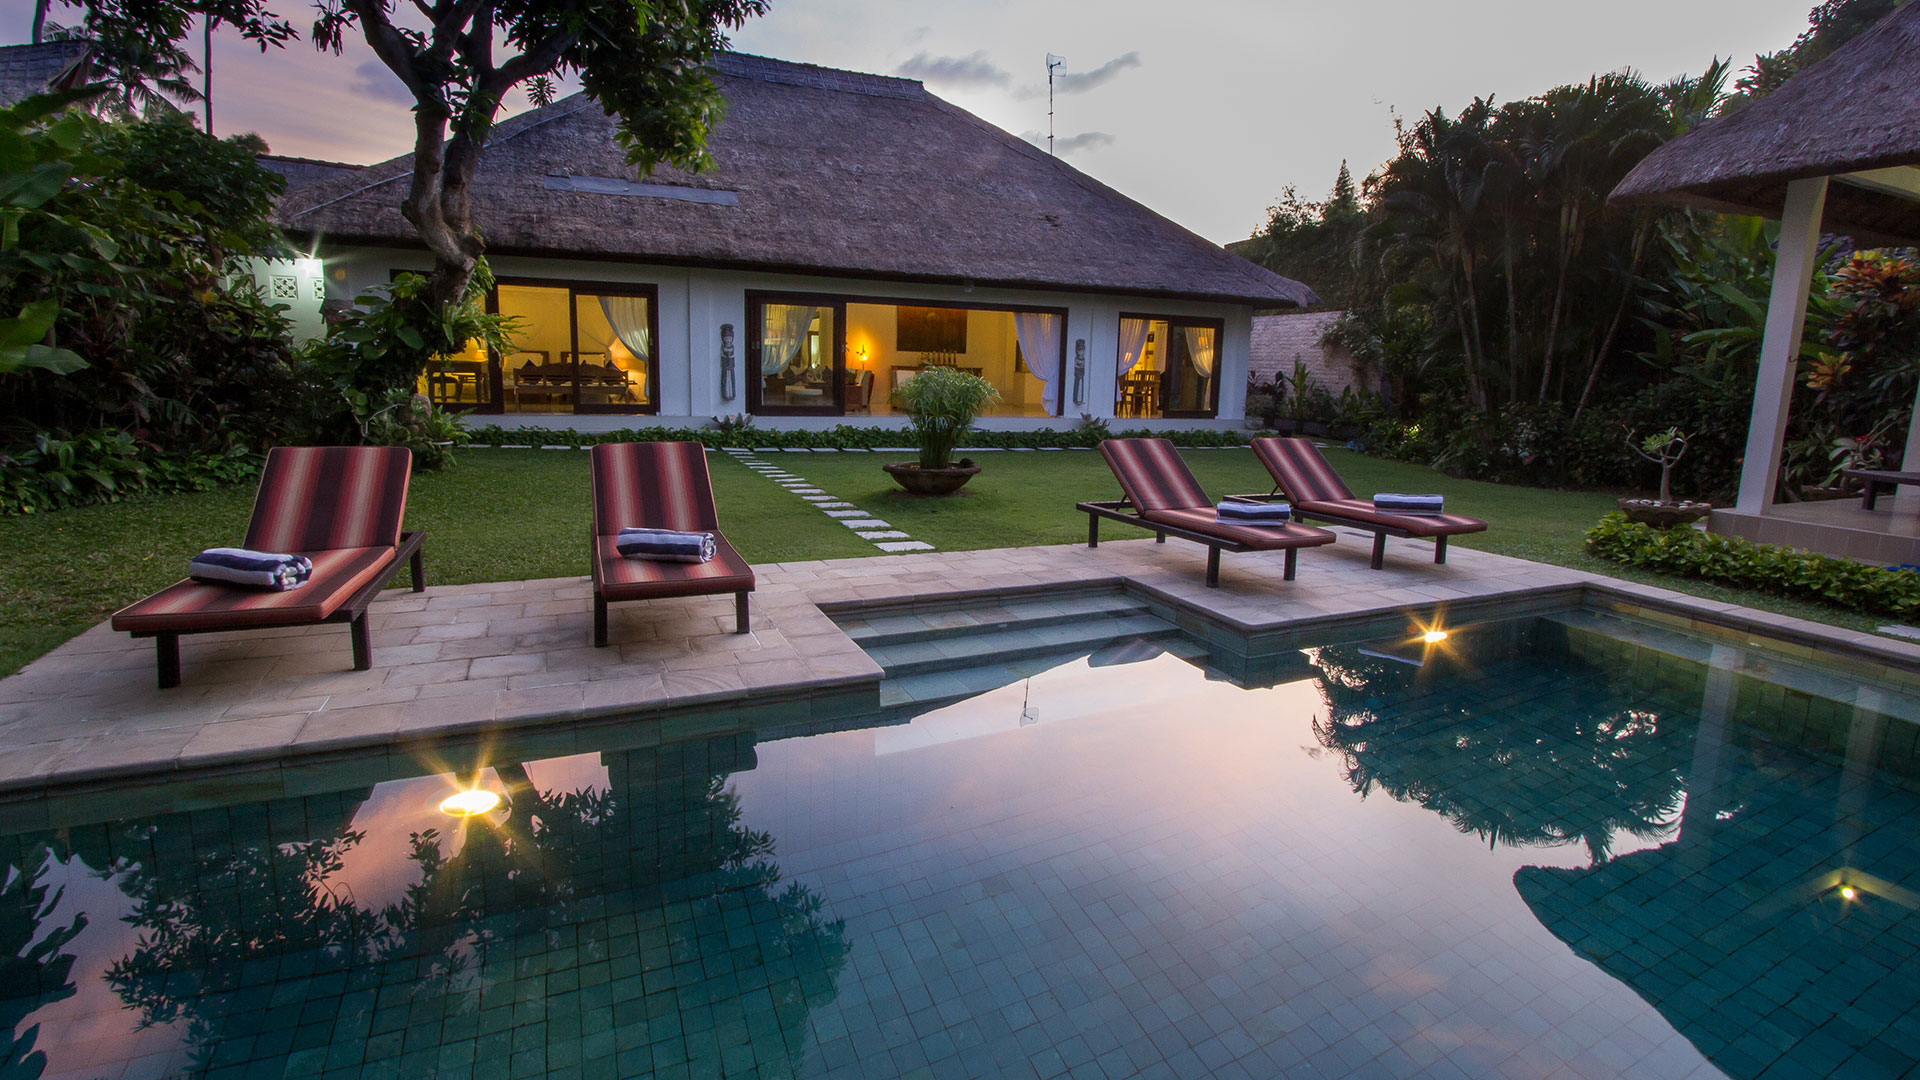 Villa Kamboja is a 3 bedroom private villa for family holiday, located in Double Six, Seminyak.